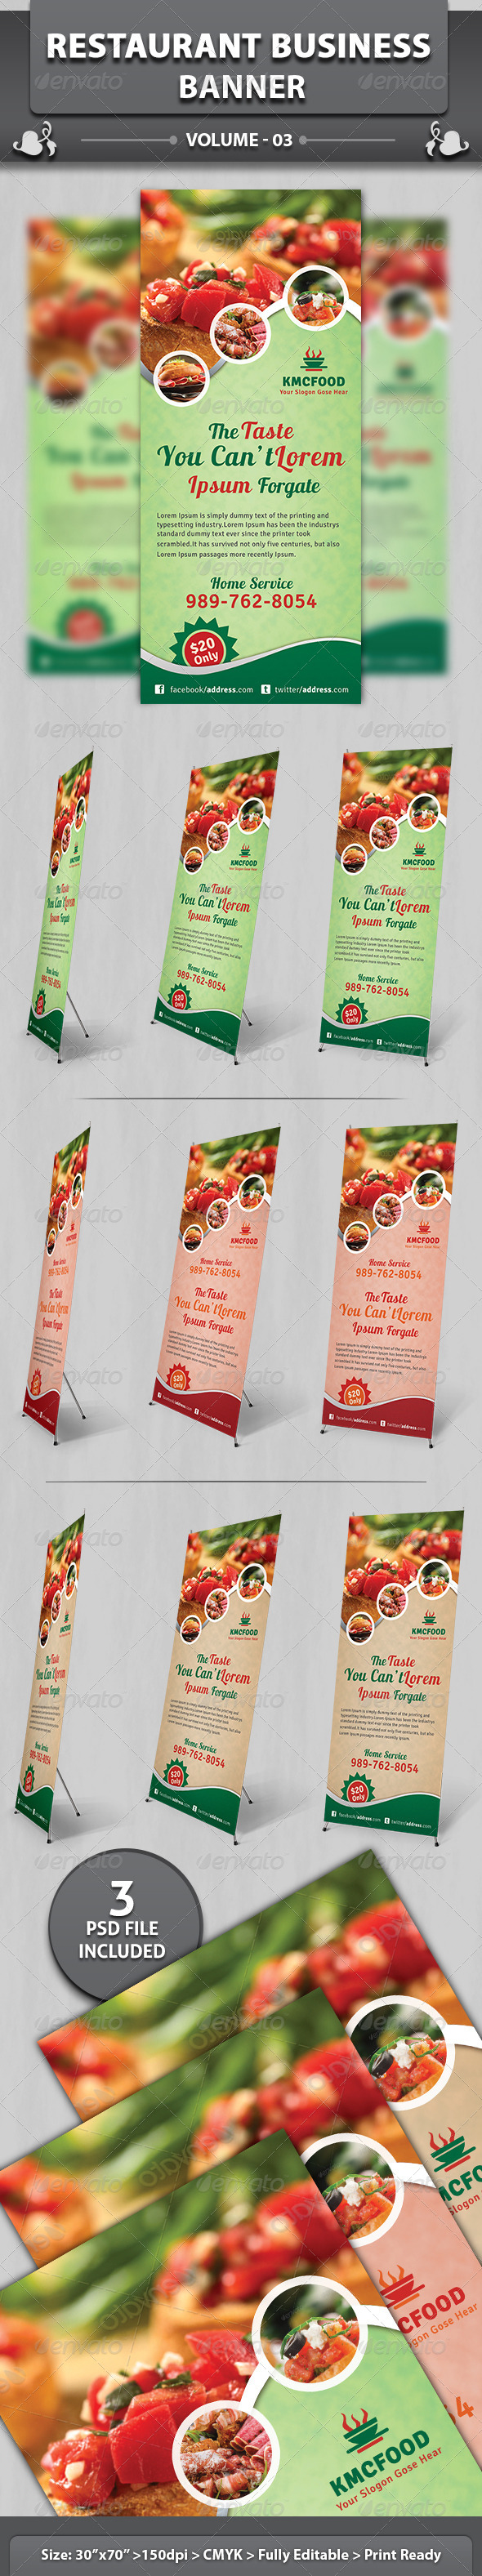 Restaurant Business Banner v3 - Signage Print Templates